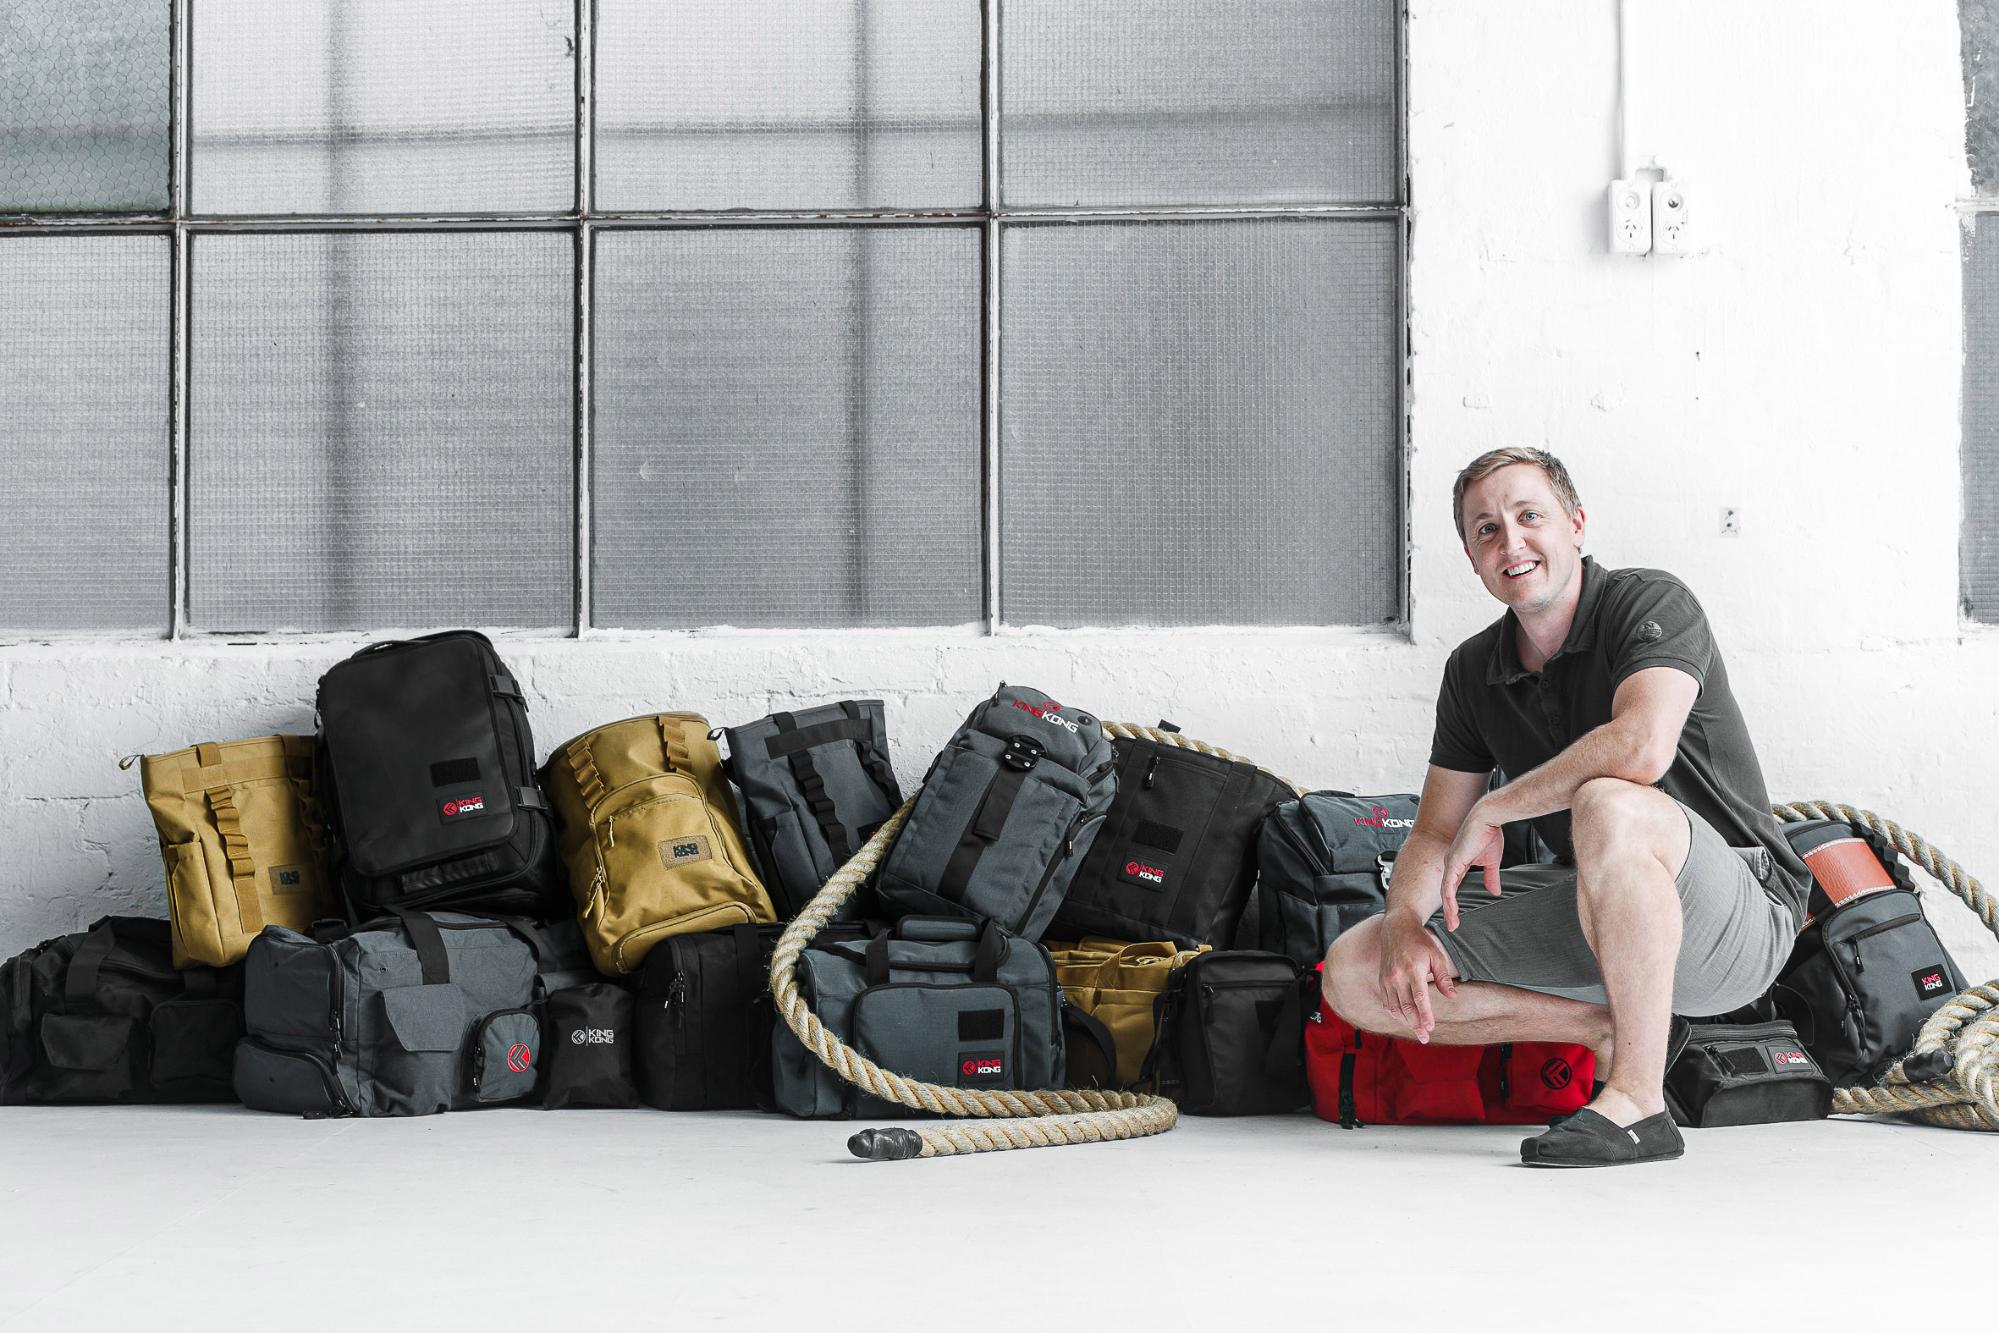 Founder of King Kong Apparel, Stefan Gehrig in a polo shirt and shorts backdropped by various bags made by his brand.